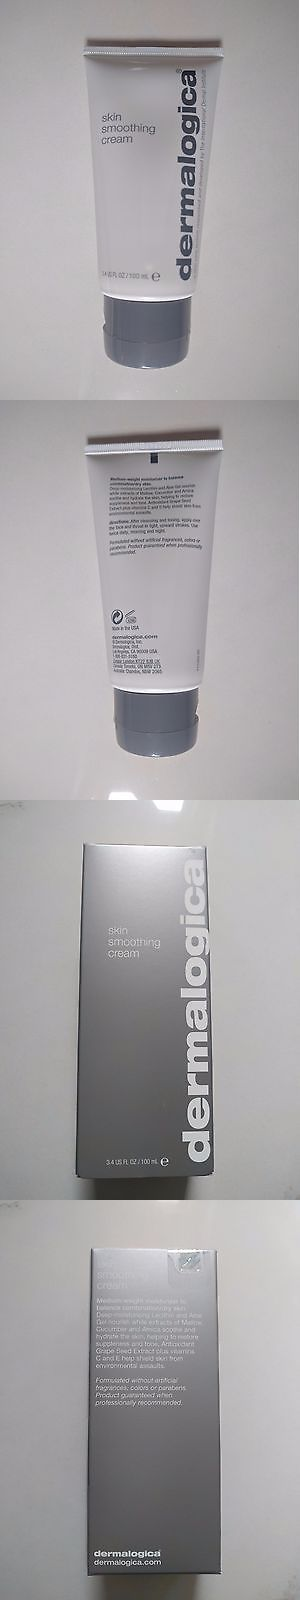 Moisturizers: Dermalogica Skin Smoothing Cream 3.4Oz 100Ml, New In Box -> BUY IT NOW ONLY: $42.88 on eBay!